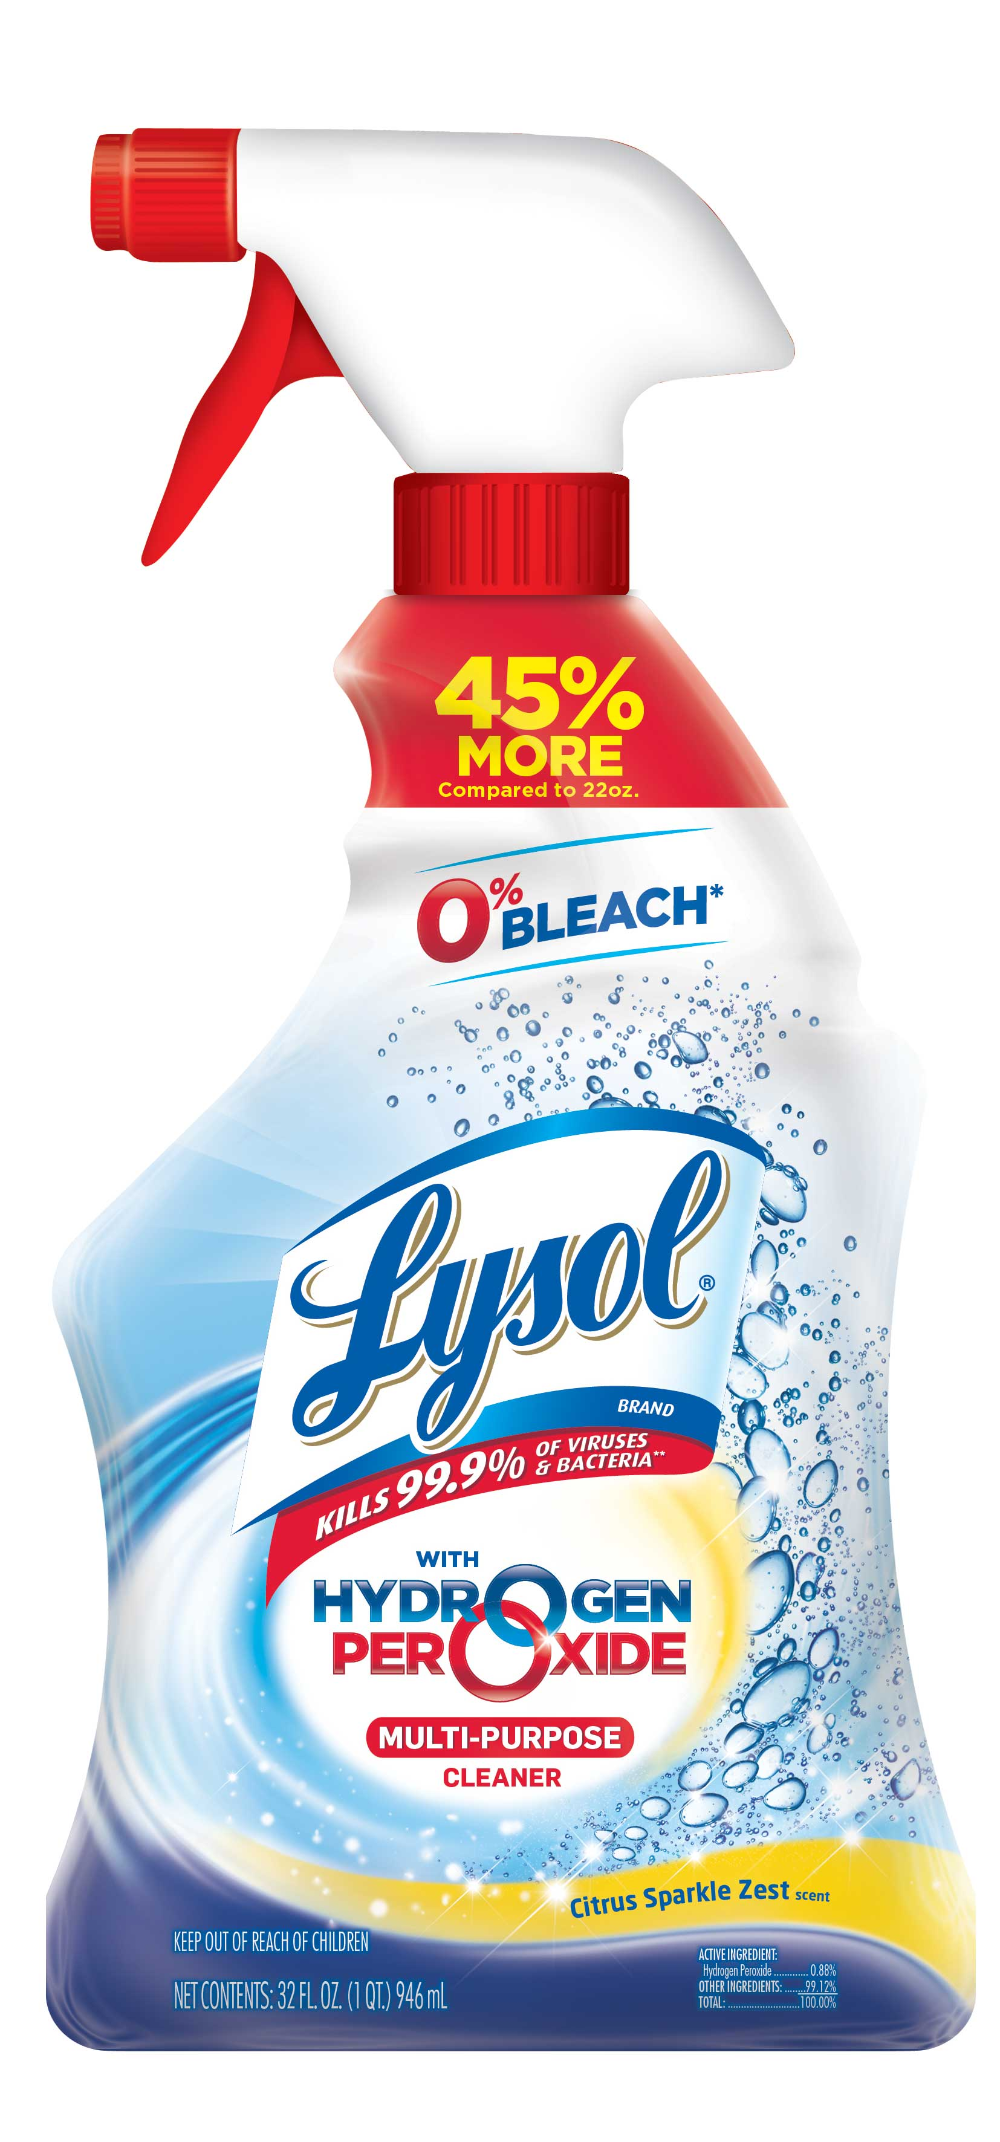 Lysol Bleach Free Hydrogen Peroxide Multi Purpose Cleaner Citrus